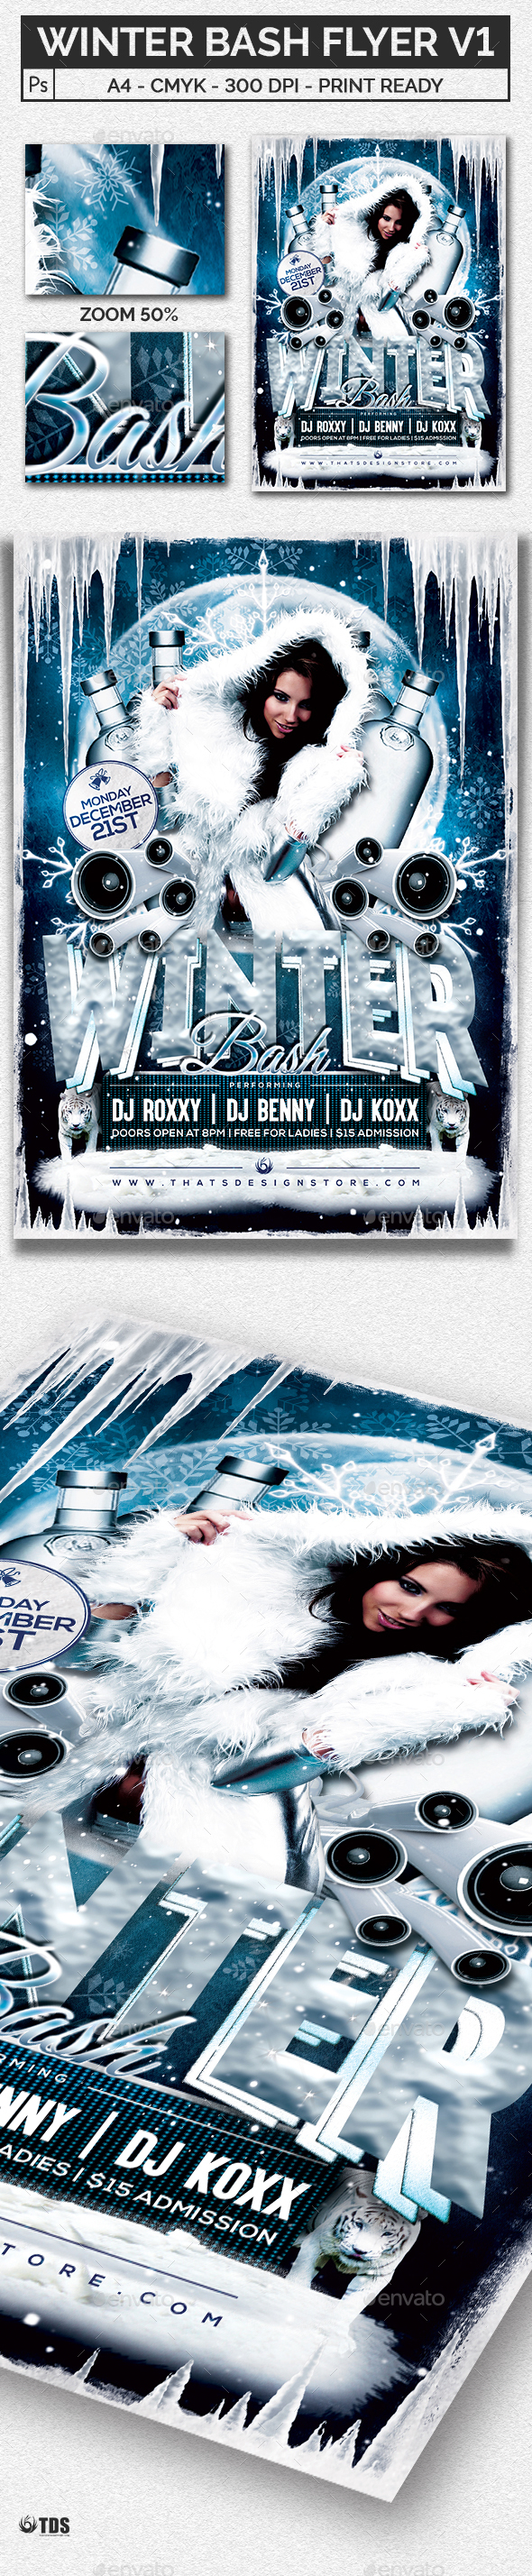 Winter Bash Flyer Template V1 - Clubs & Parties Events